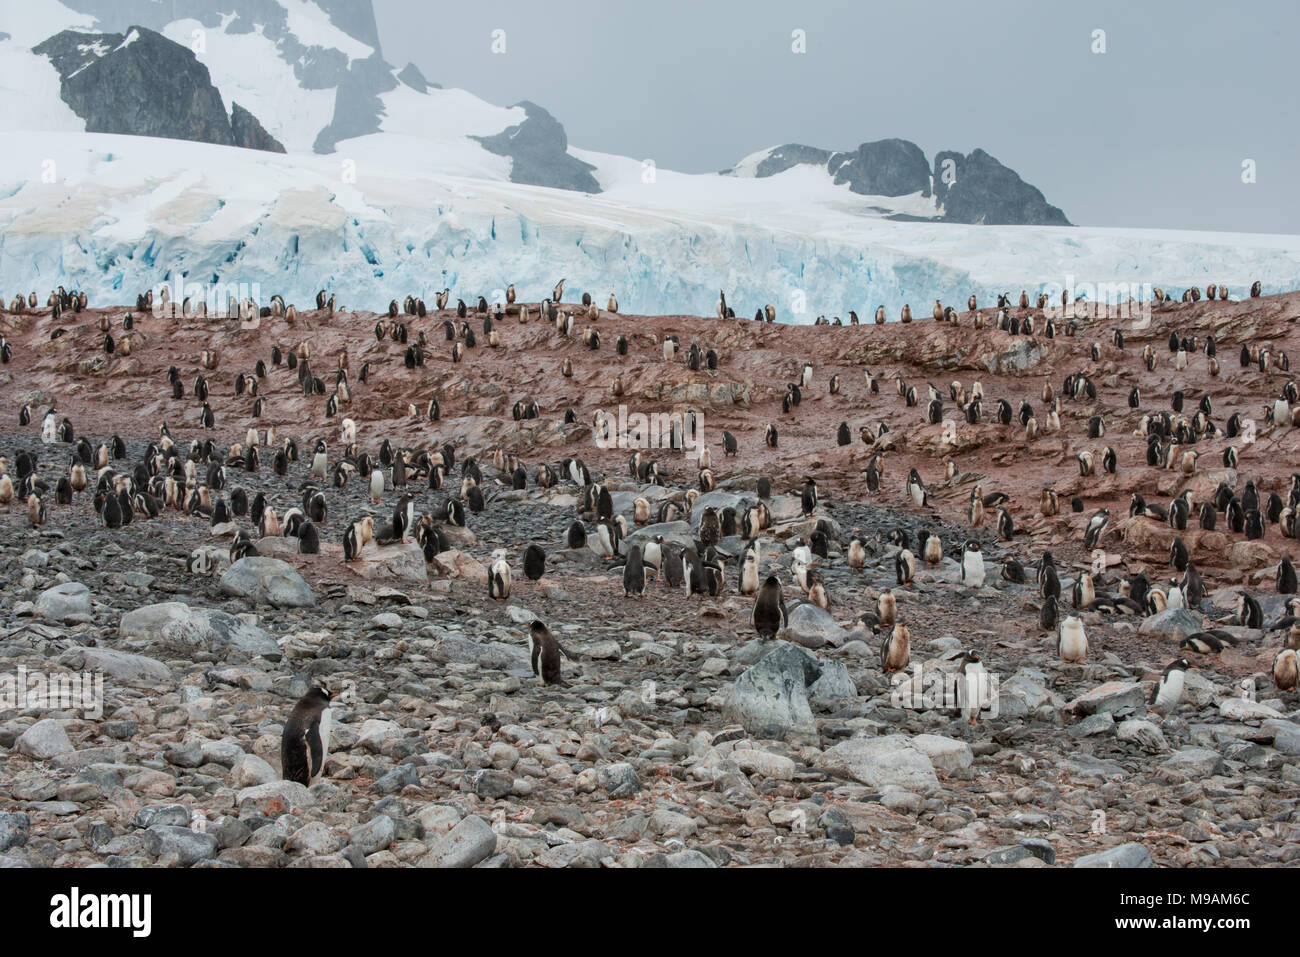 A colony of Gentoo Penguins in Antarctica - Stock Image